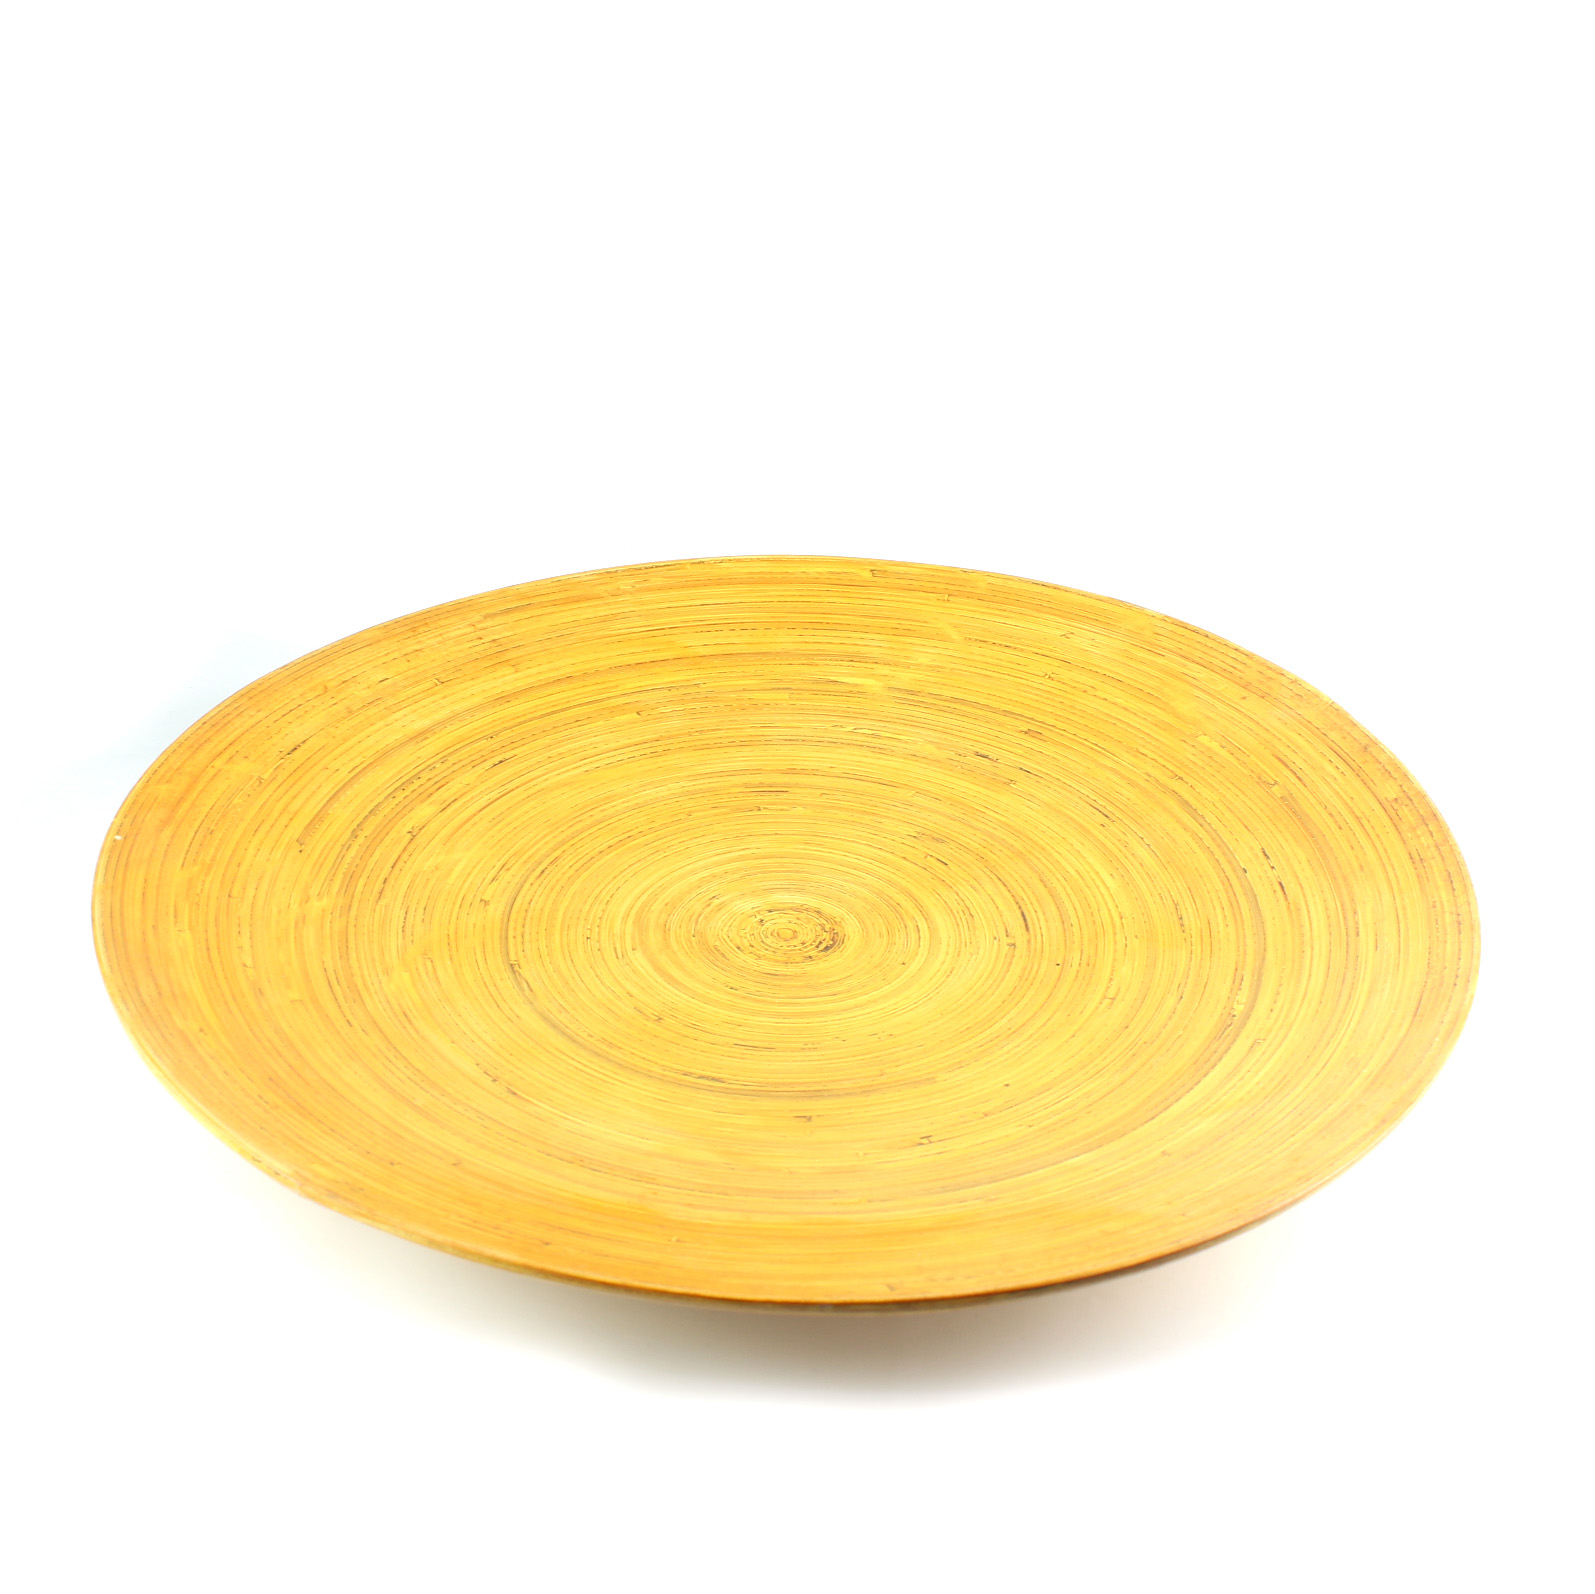 Bamboo Lacquer Plate